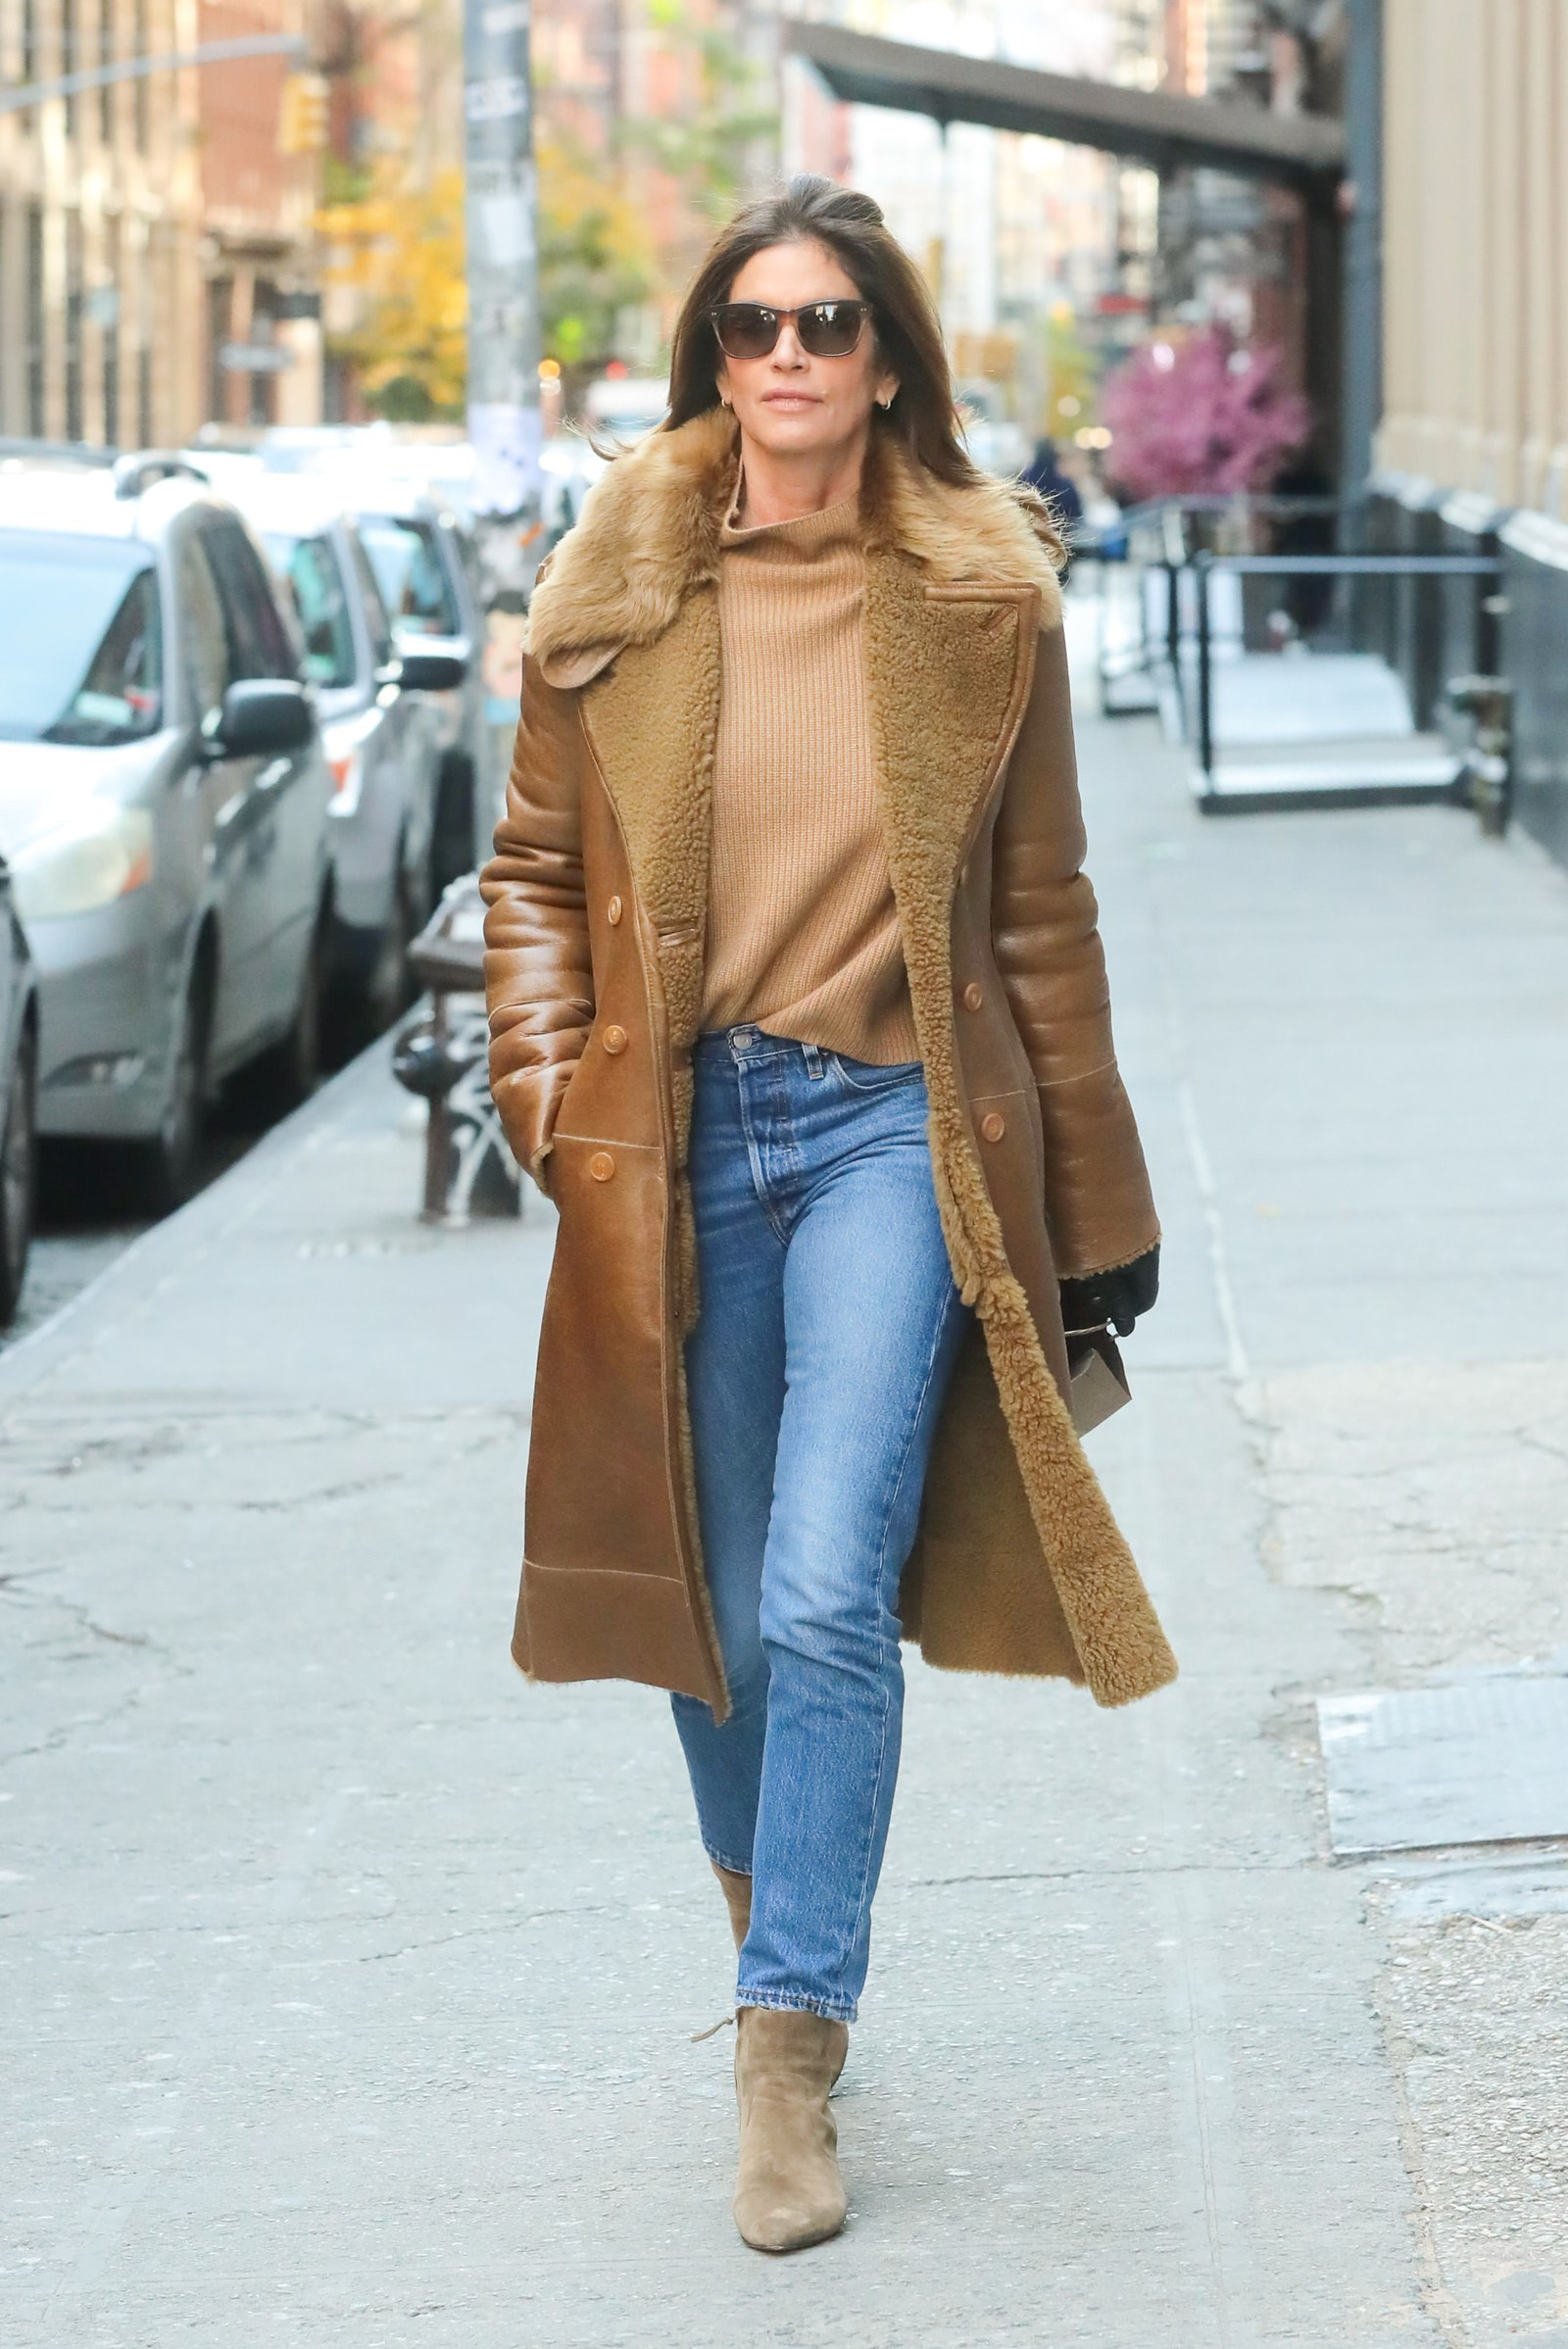 How to wear jeans with booties Cindy Crawford shows how to wear jeans with booties in New York City